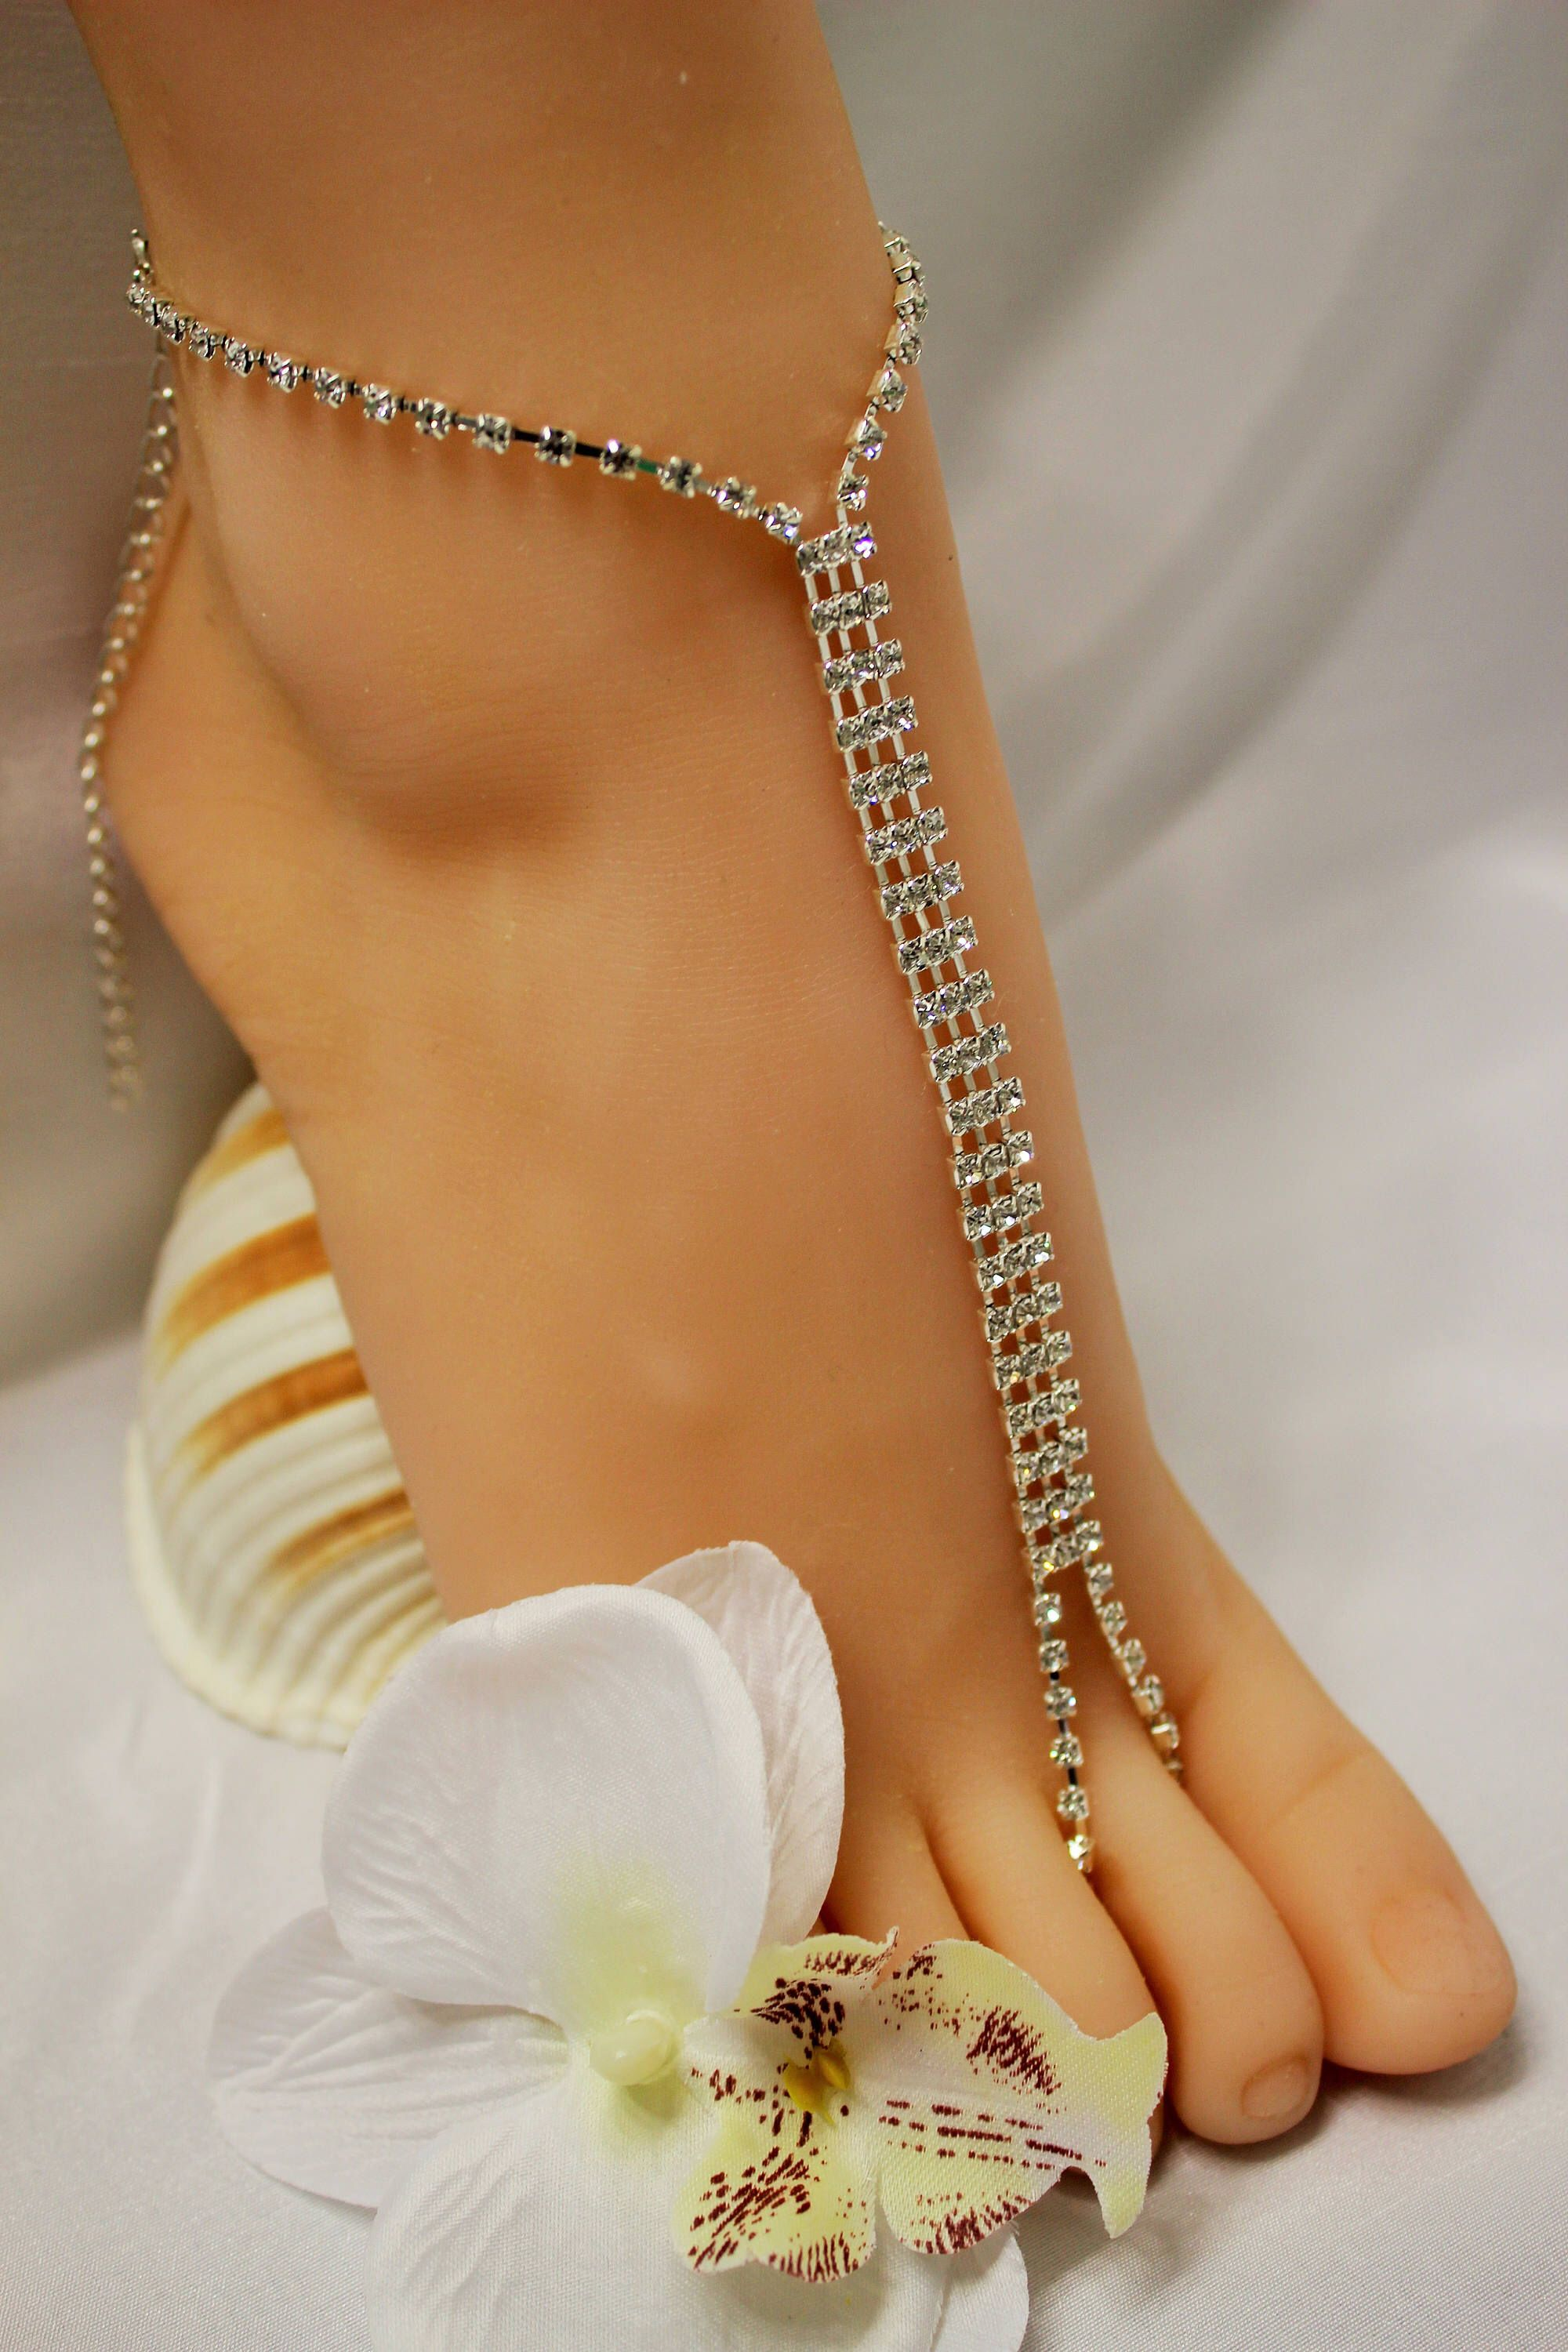 anklet rhinestone dbdd toe ring crystal barefoot jewelry with accessory chain sandal beach collections products wedding foot